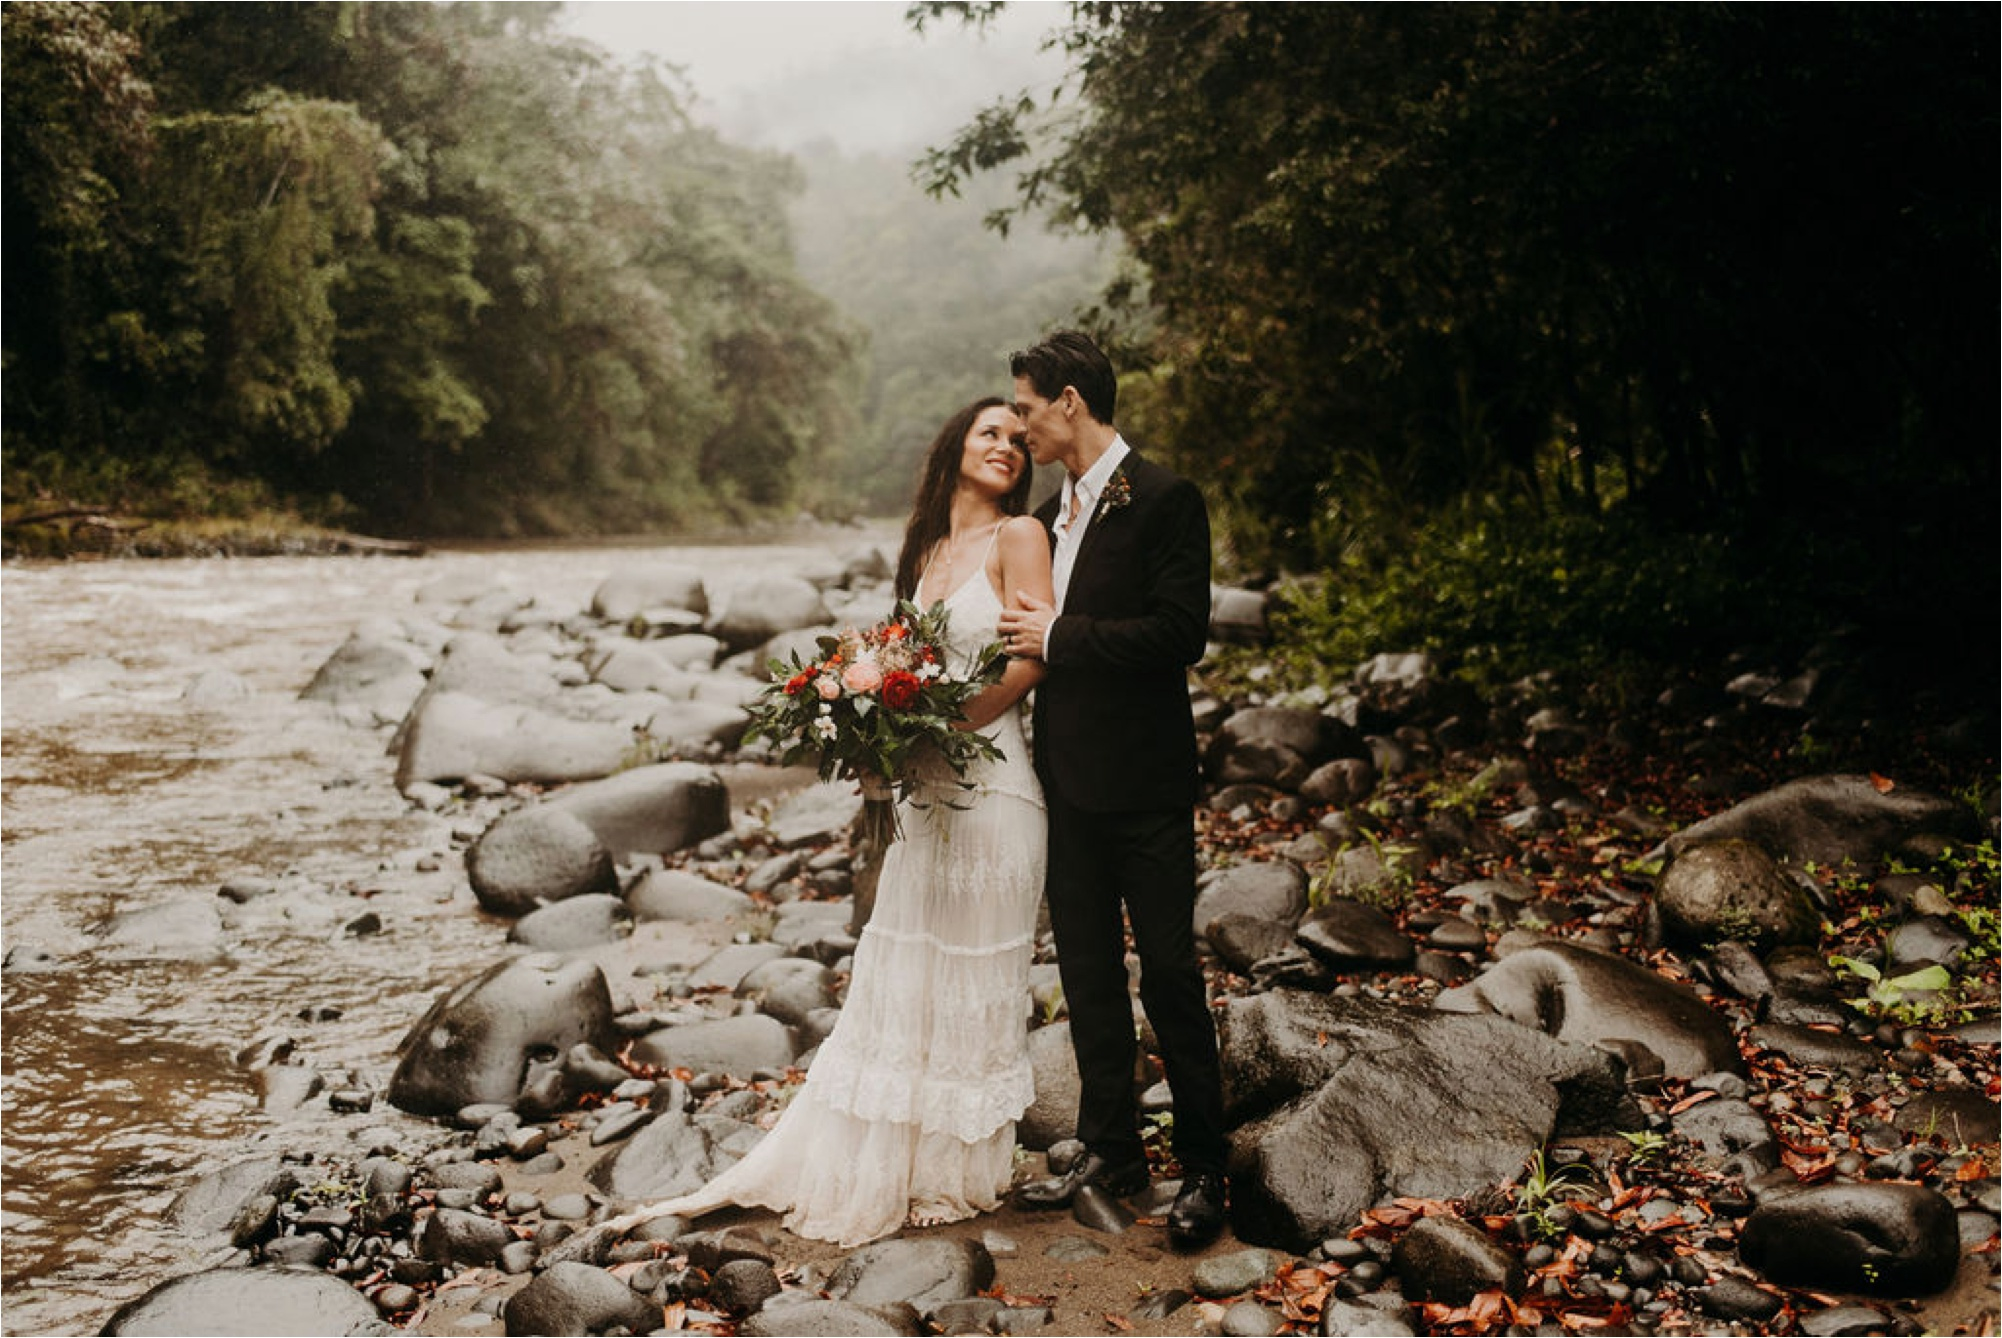 Costa Rica Elopement Wedding Photographer Pacuare Lodge_4113.jpg